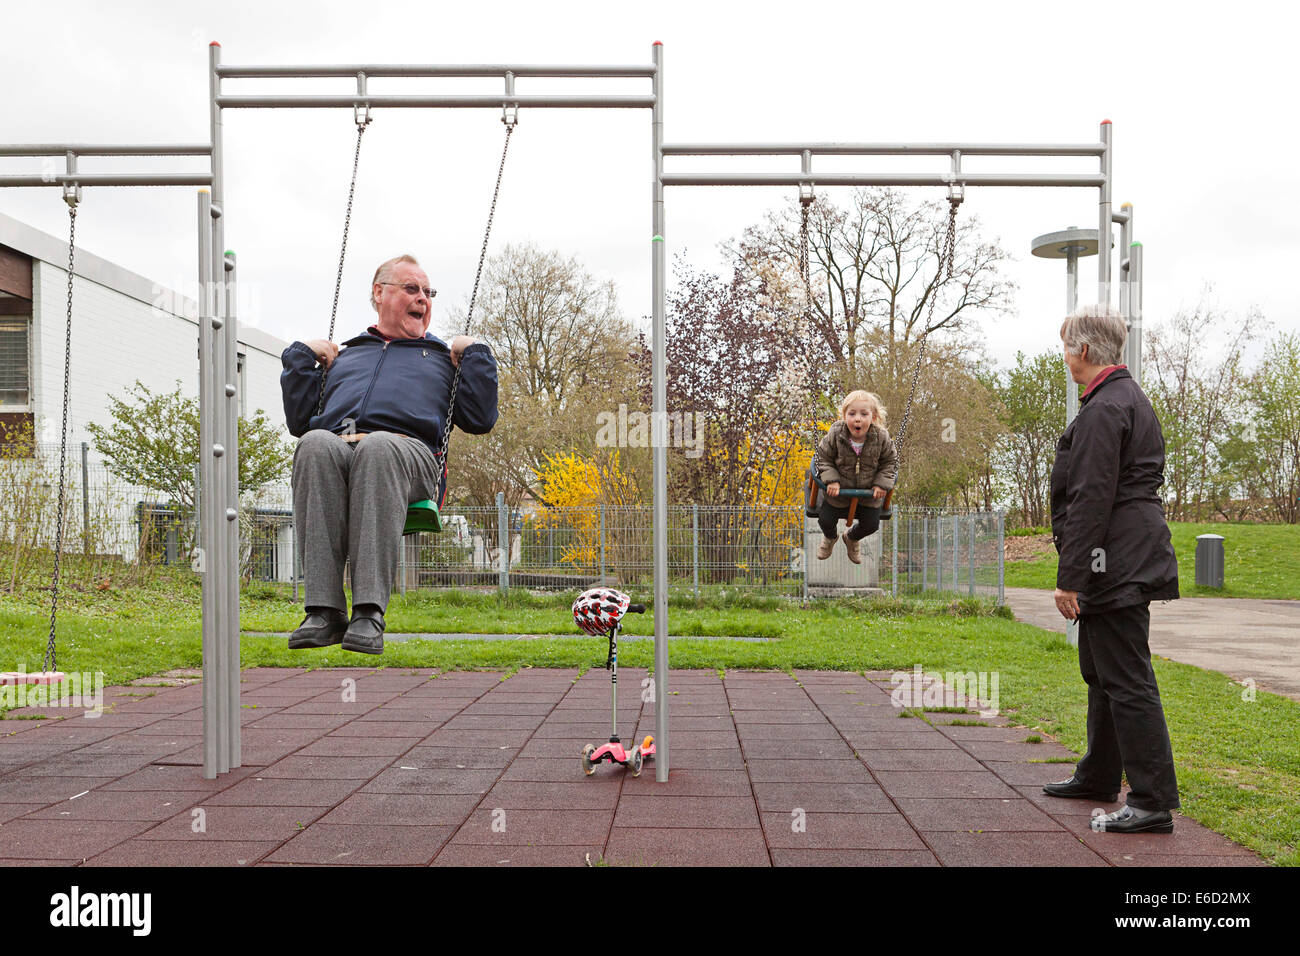 Grandfather and his granddaughter, 3 years, playing on swings, grandmother standing next to them - Stock Image